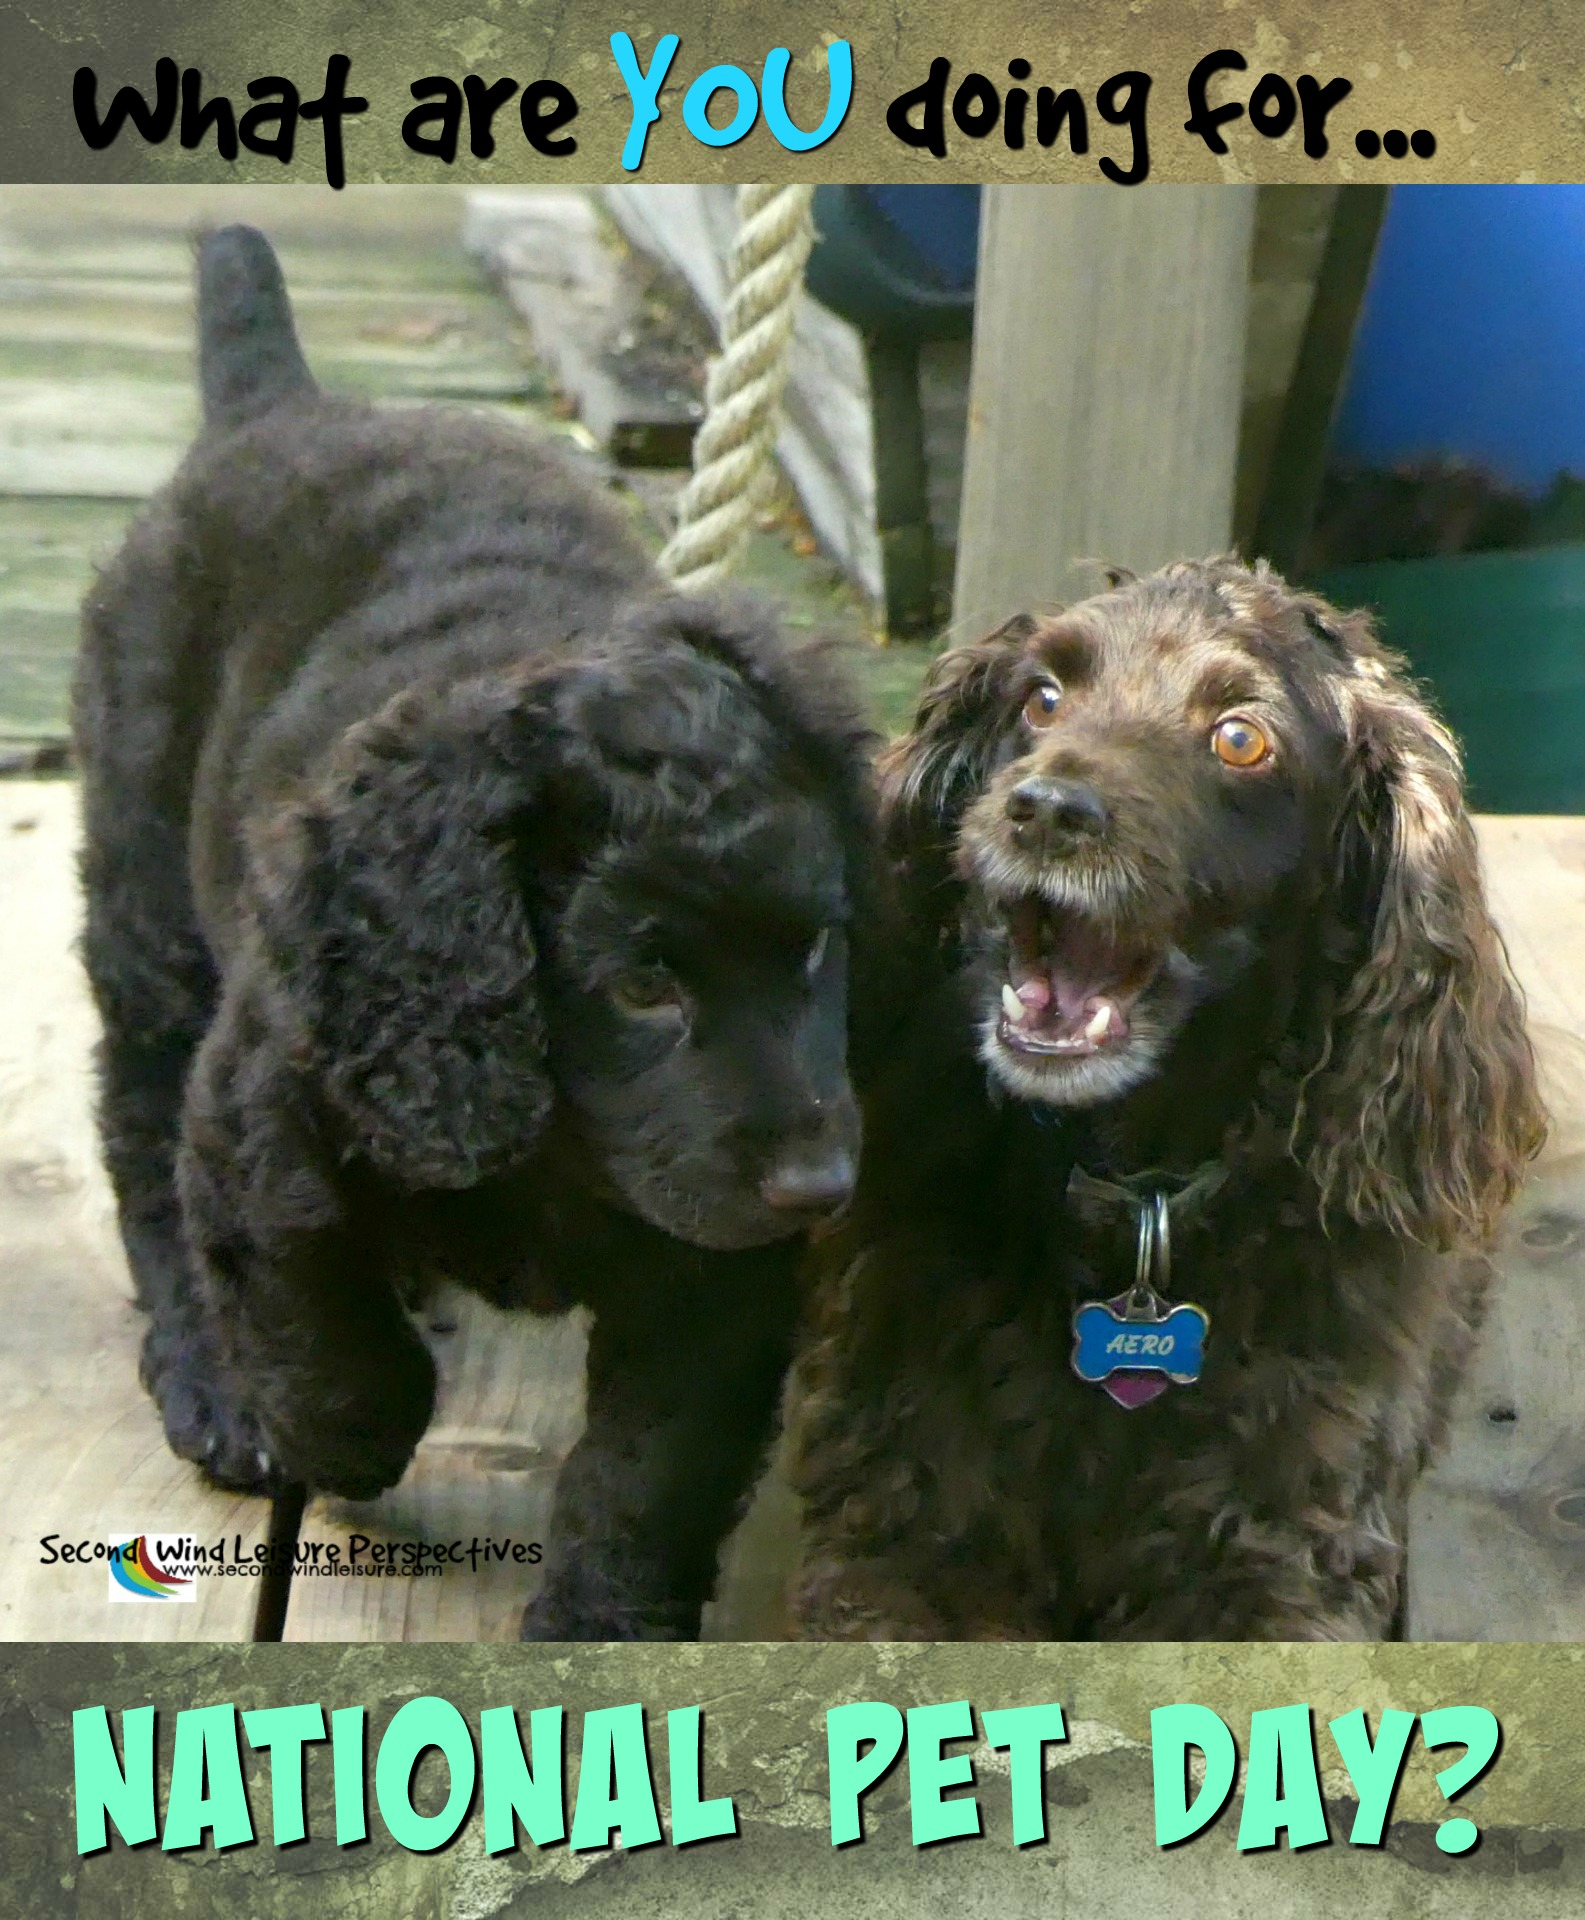 What are you doing for National Pet Day?